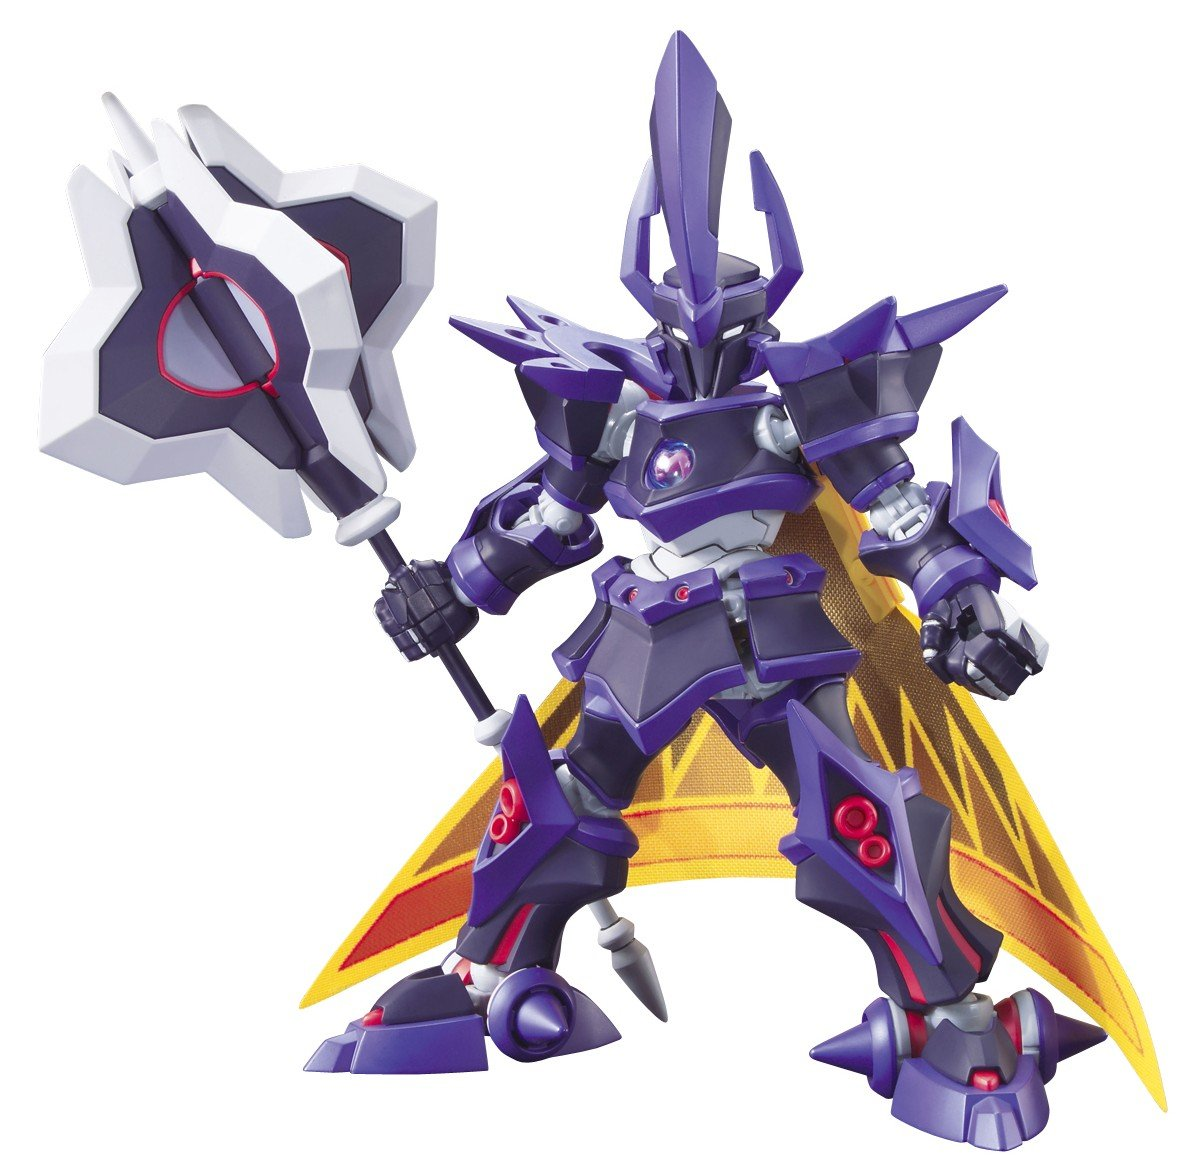 Little Battlers eXperience - Hyper Function LBX The Emperor